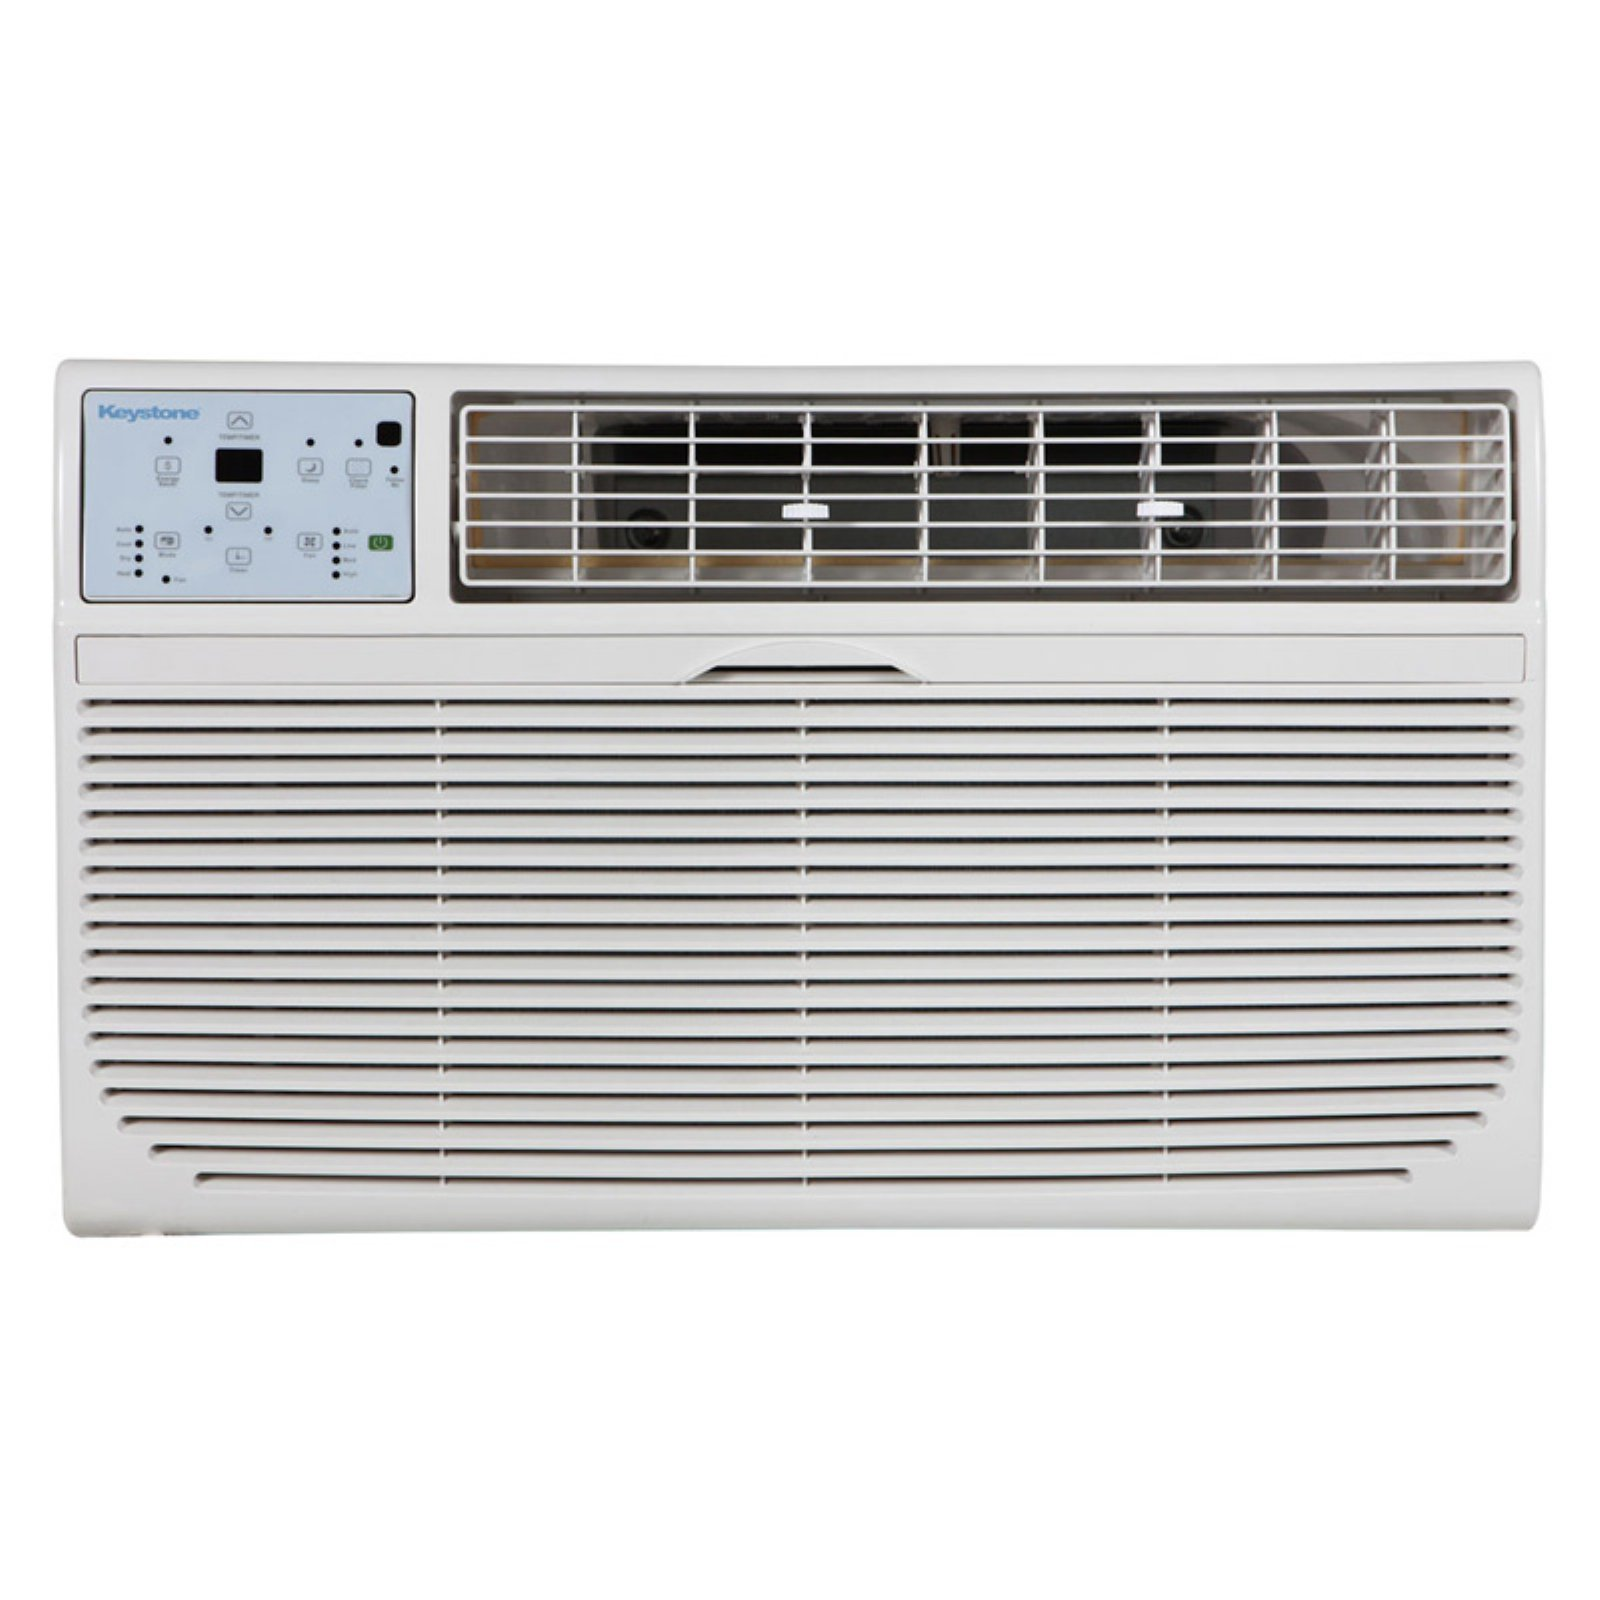 Keystone Energy Star 8,000 BTU 115V Through-the-Wall Air Conditioner with Follow Me LCD Remote Control